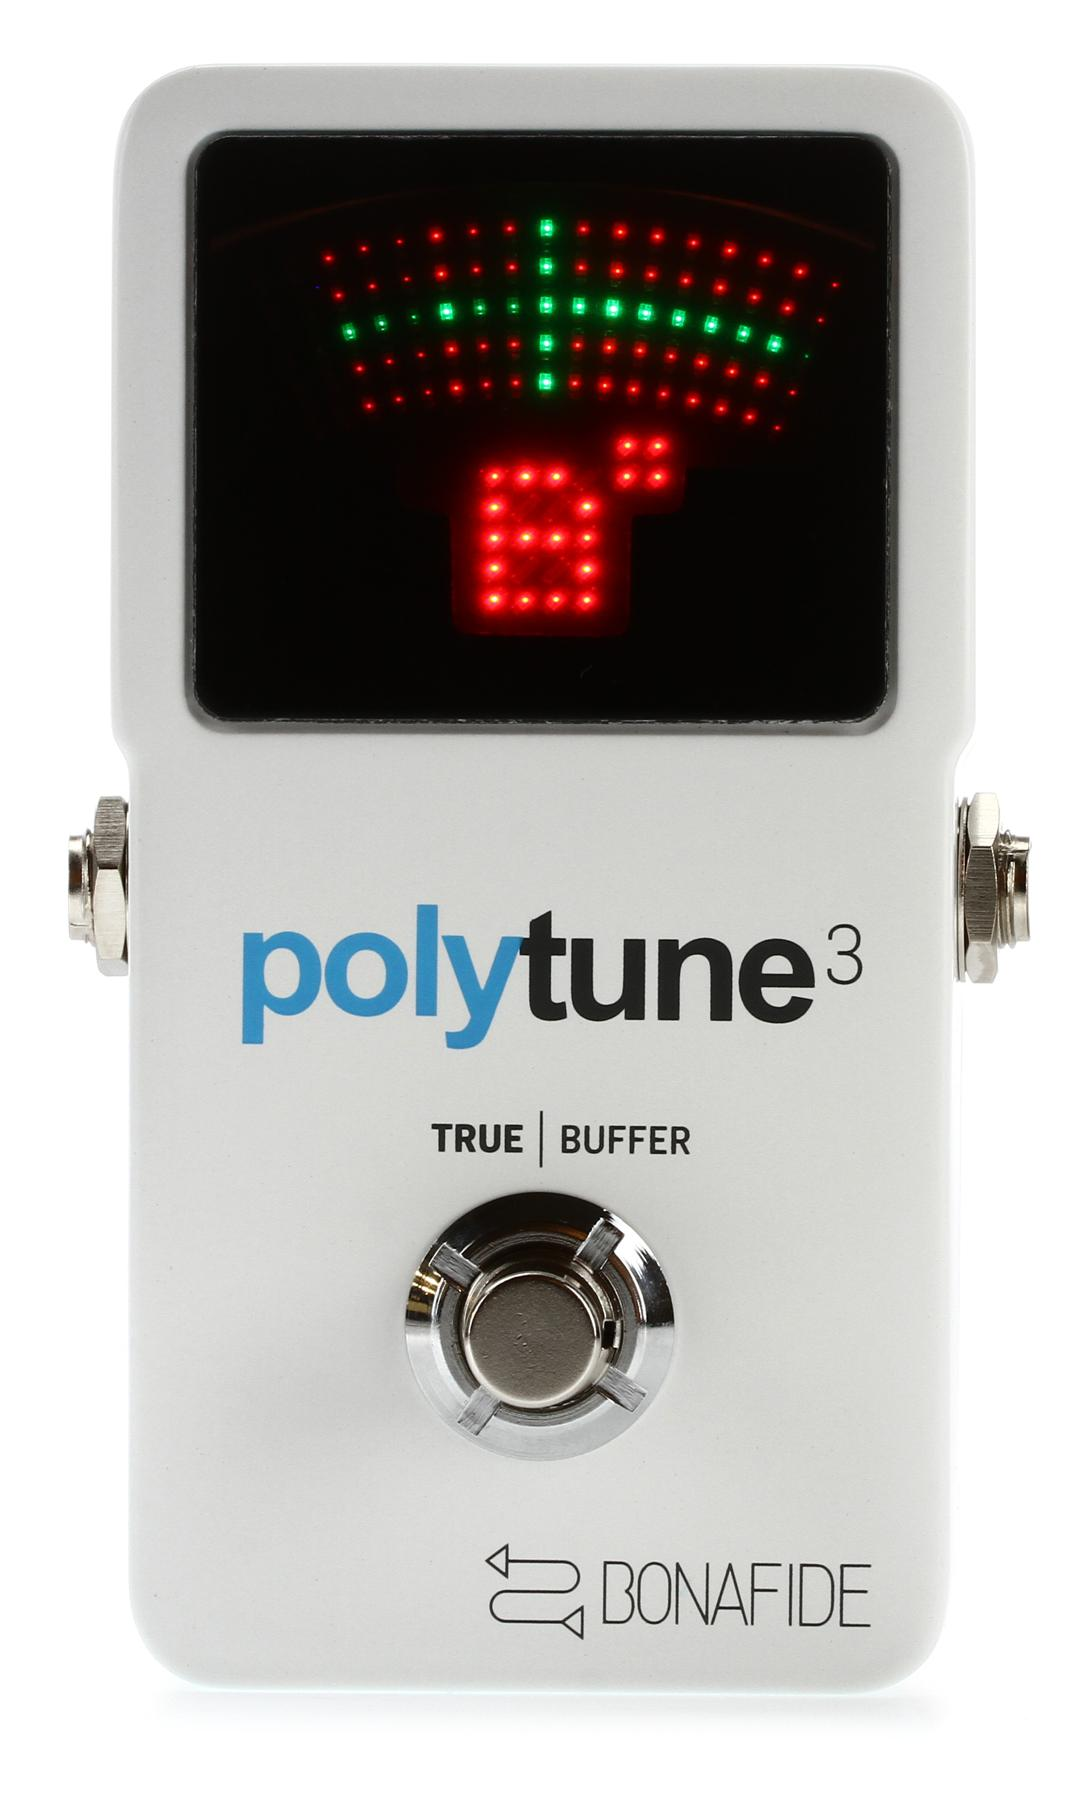 7. TC Electronic PolyTune 3 Polyphonic LED Guitar Tuner Pedal w/Buffer